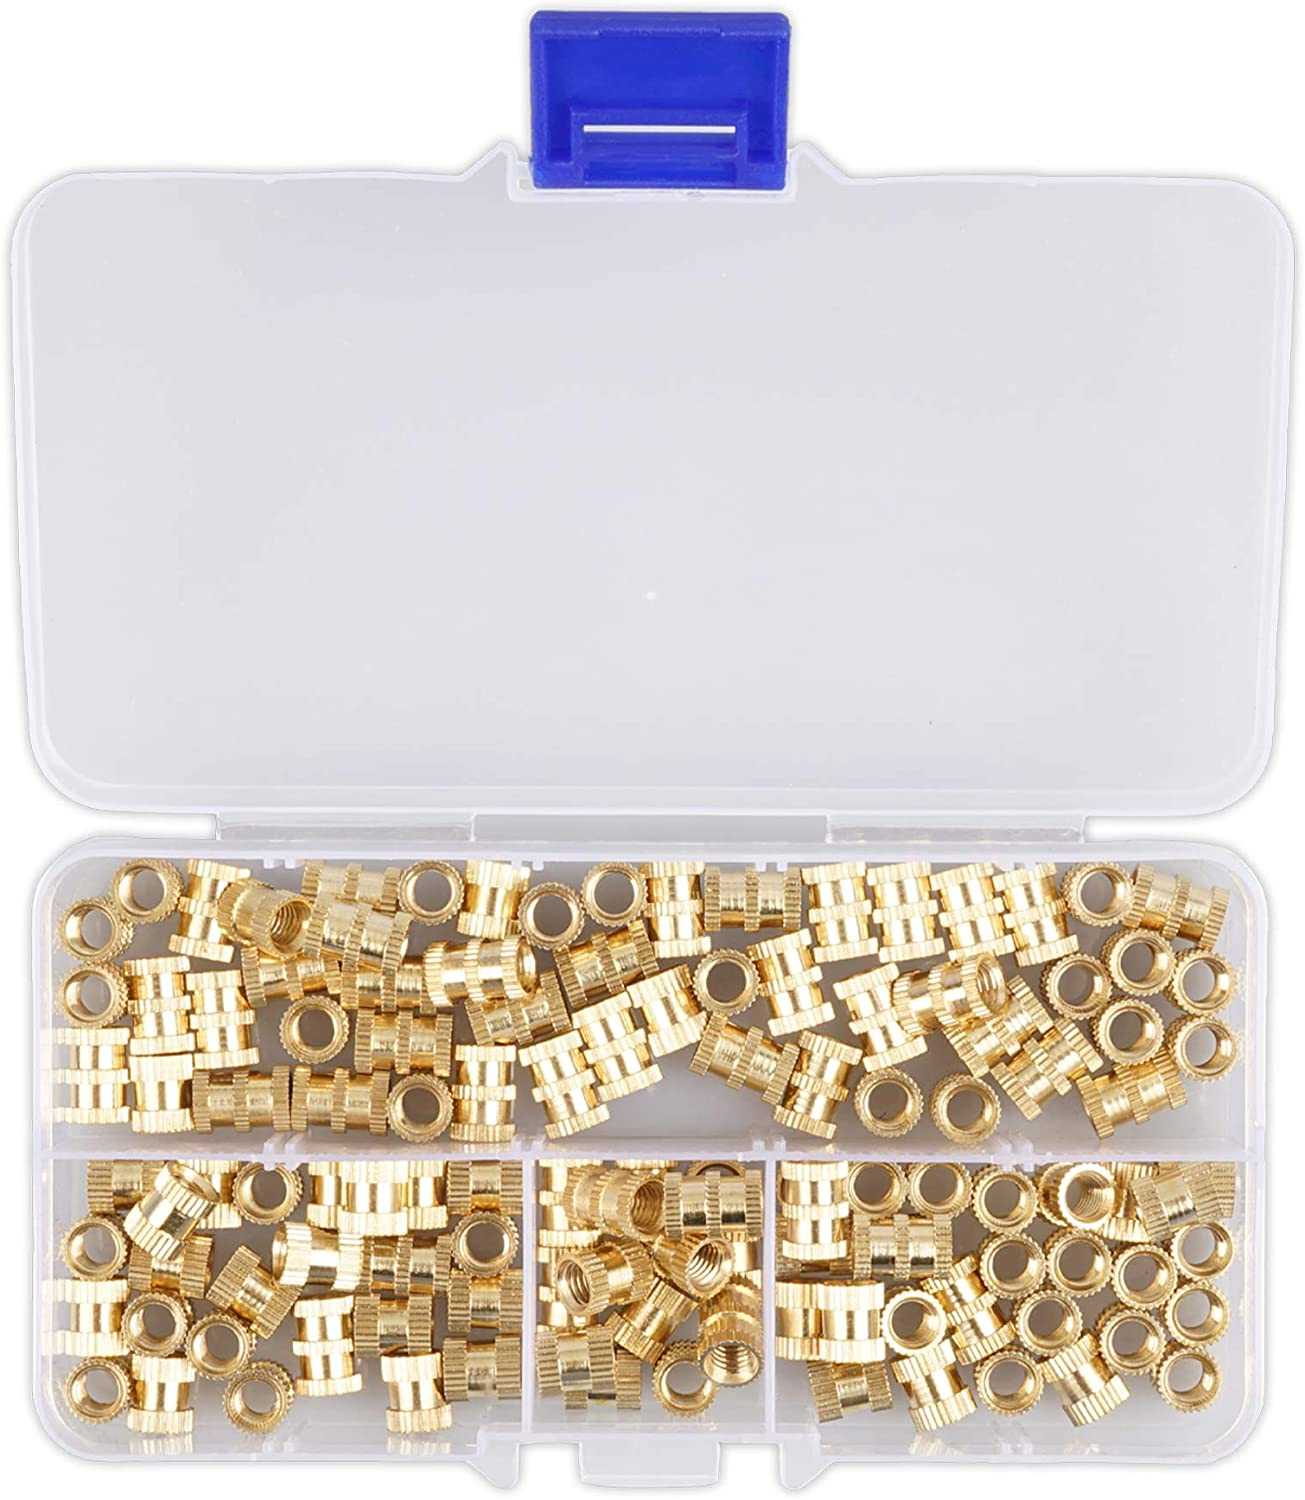 M5 Brass Knurled Nut Round Injection Molding Brass Nuts Threaded Inserts Nut Assortment Kit for 3D Printing M5x8mm M5x10mm Brass Insert Embedment Nut 120pcs Female Thread Knurled Nuts with Box